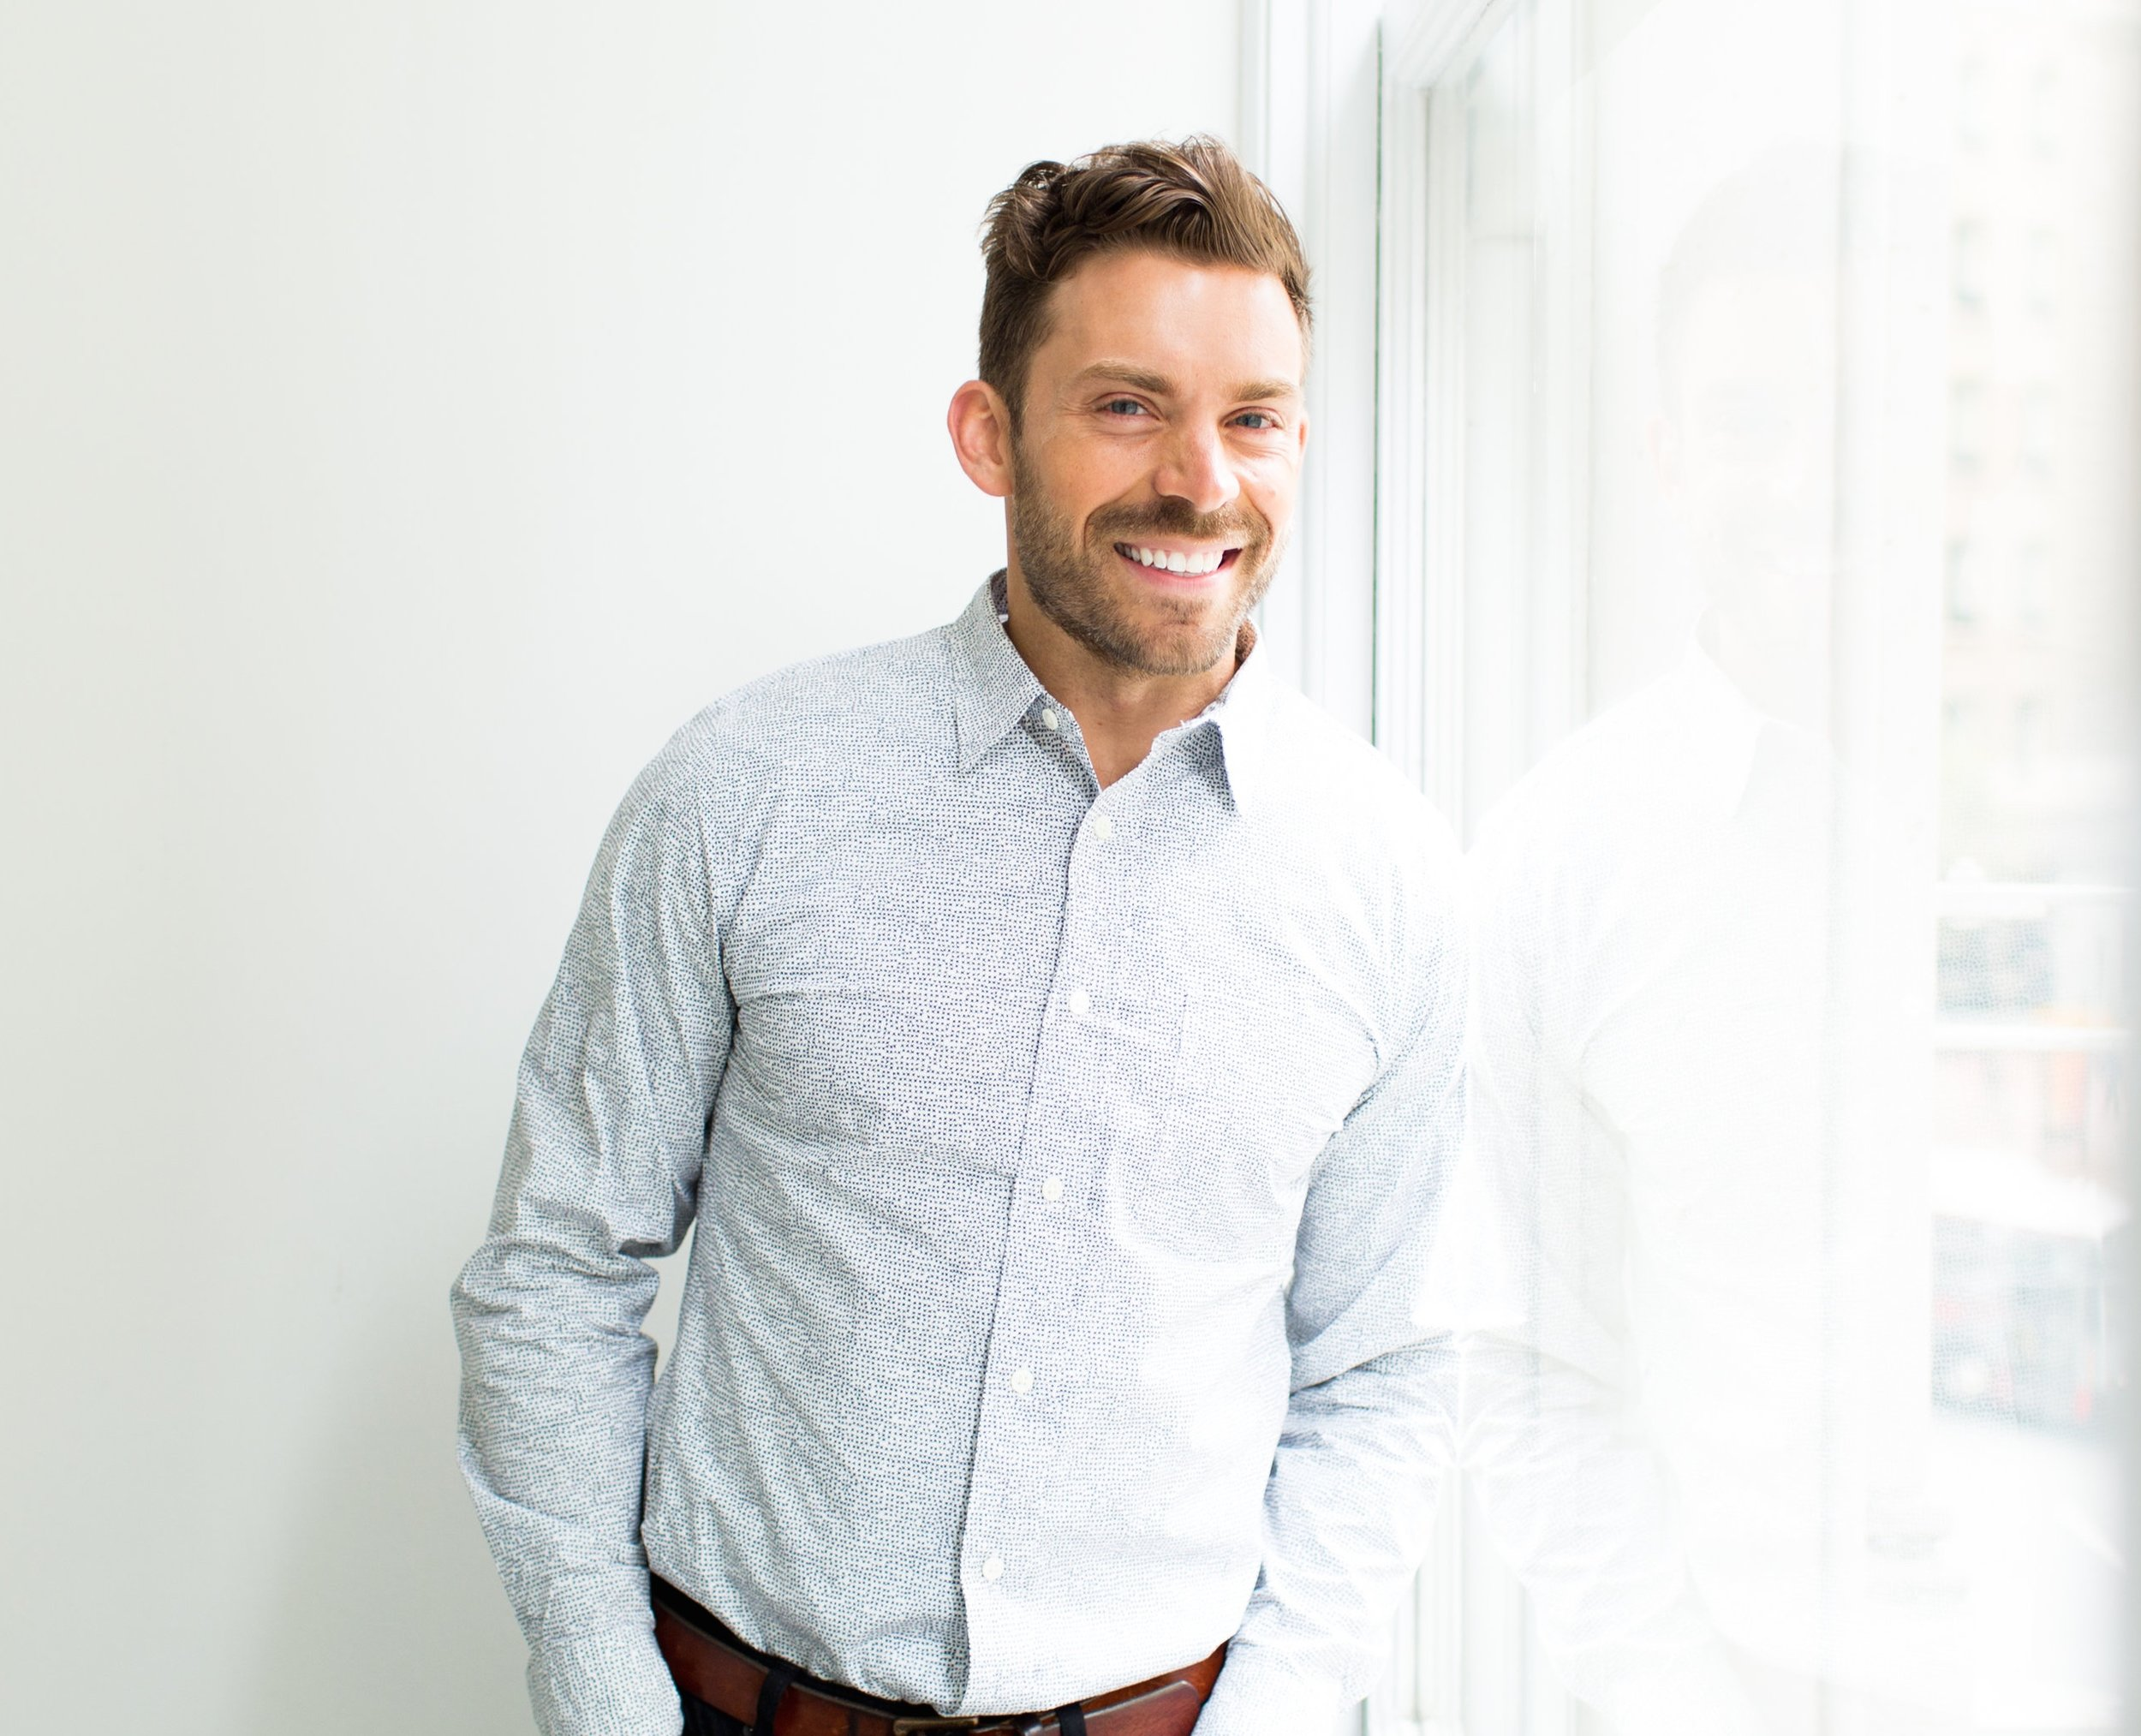 Archetype Legal, San Francisco Lawyer, Counsel, Startup Advisor, Drew Amoroso, Move Associates, Lawyer of Startups, Entrepreneurial Law, Small Business Law